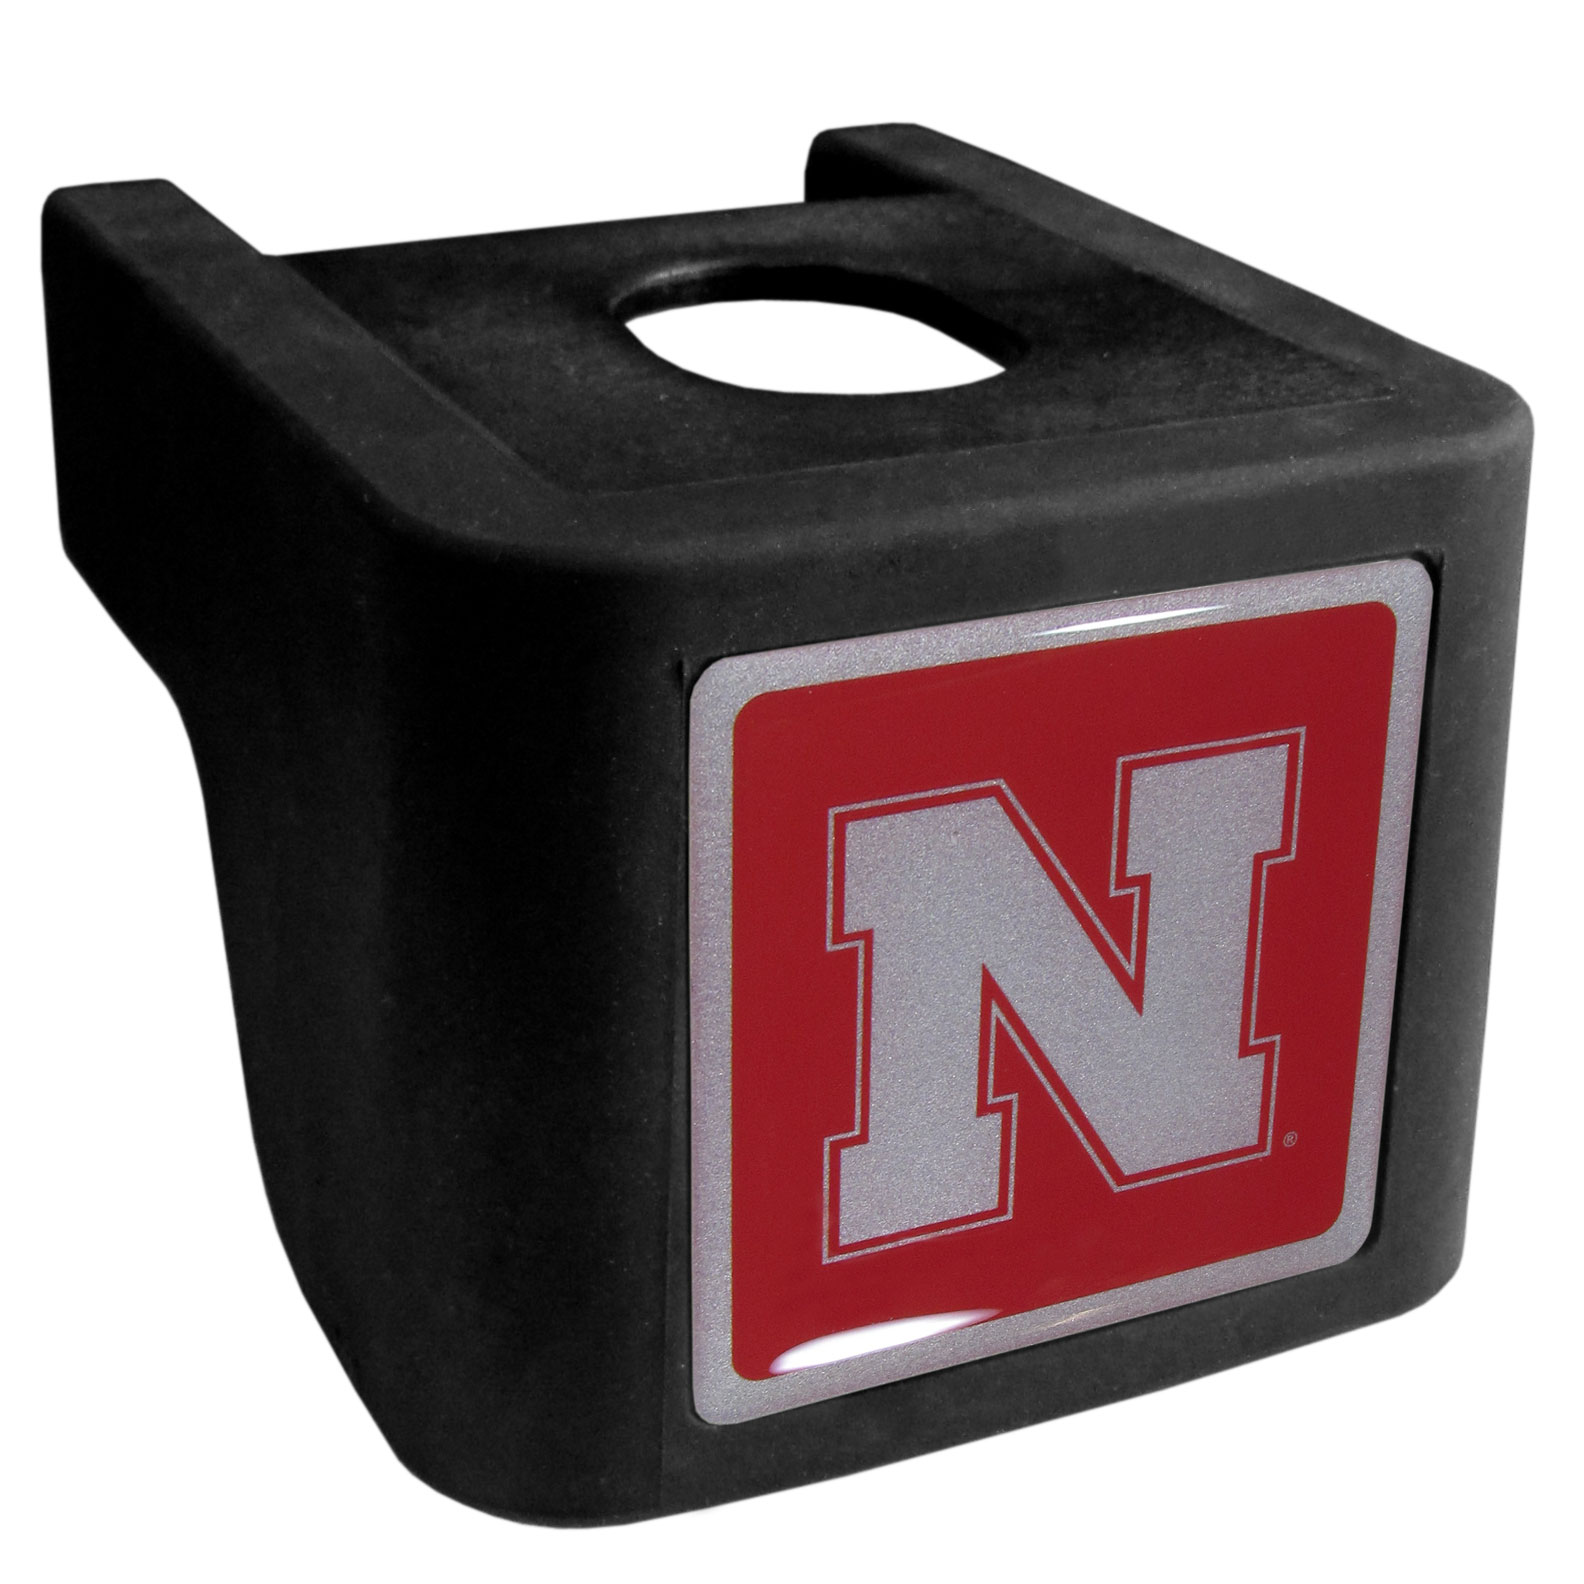 Nebraska Cornhuskers Shin Shield Hitch Cover - This unique hitch cover features a large Nebraska Cornhuskers logo. If you have ever hooked up a trailer or boat your have probably smashed your shins on the ball hitch a few times. This revolutionary shin shield hitch cover provides your much abused shins with the protection they deserve! The tough rubber hitch is rated to work with Class V hitch receivers hauling up to 17,000 gross trailer weight and 1,700 tongue weight allowing you to leave it on while hauling.